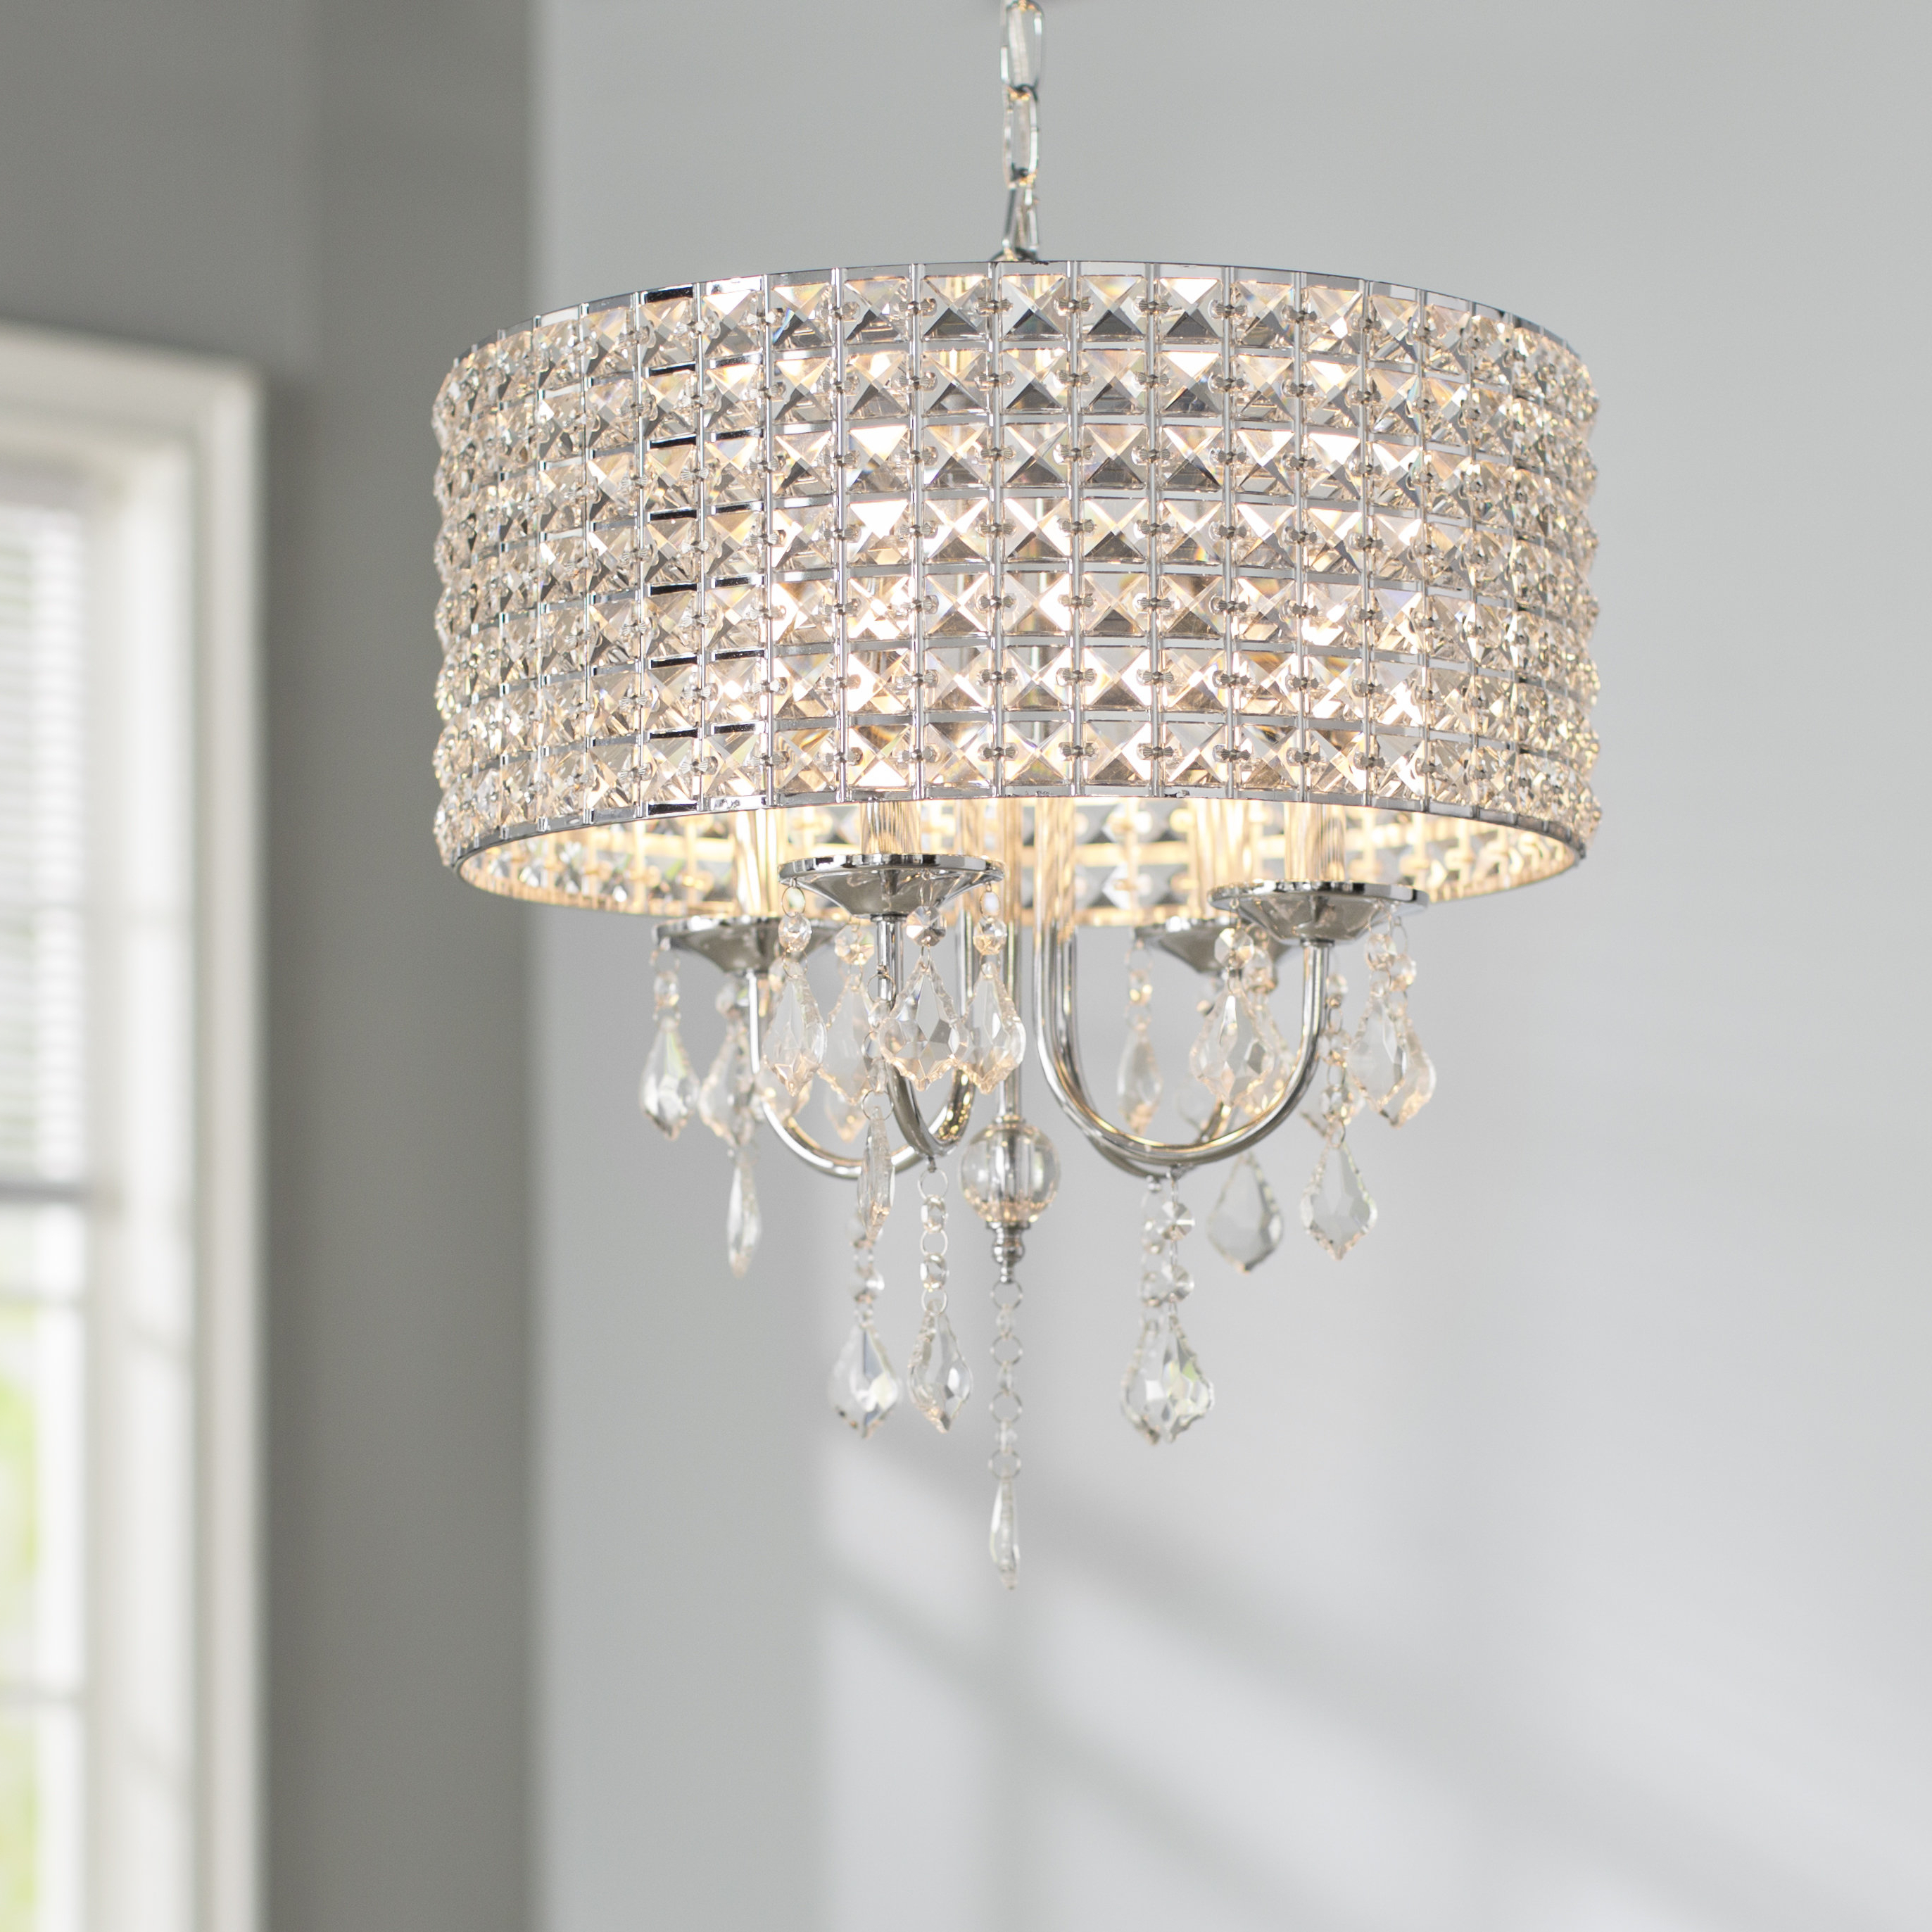 Popular Albano 4 Light Crystal Chandeliers In Willa Arlo Interiors Albano 4 Light Crystal Chandelier (Gallery 5 of 20)